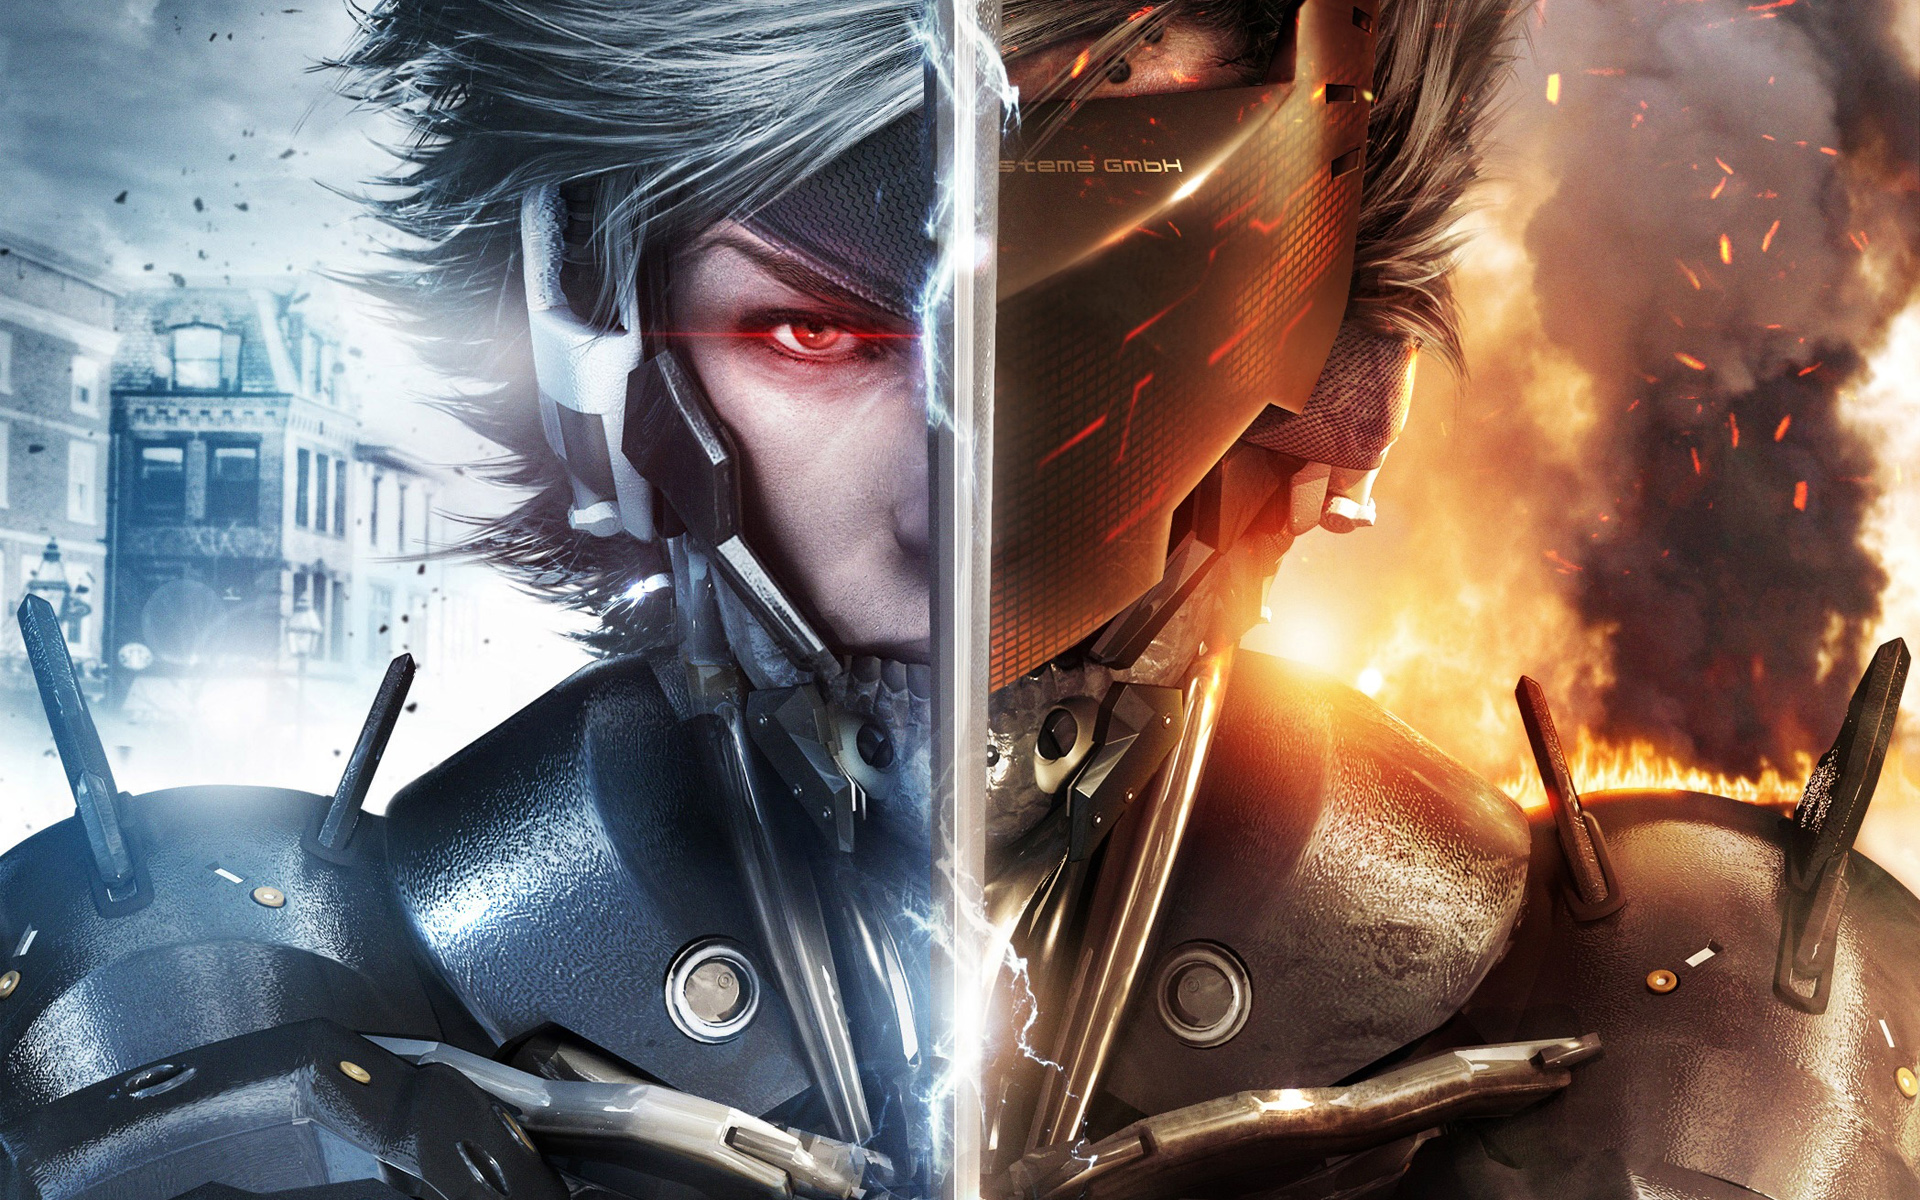 It looks like my personal favorite game of the year so far, Metal Gear Rising Revengeance, is coming to PC.